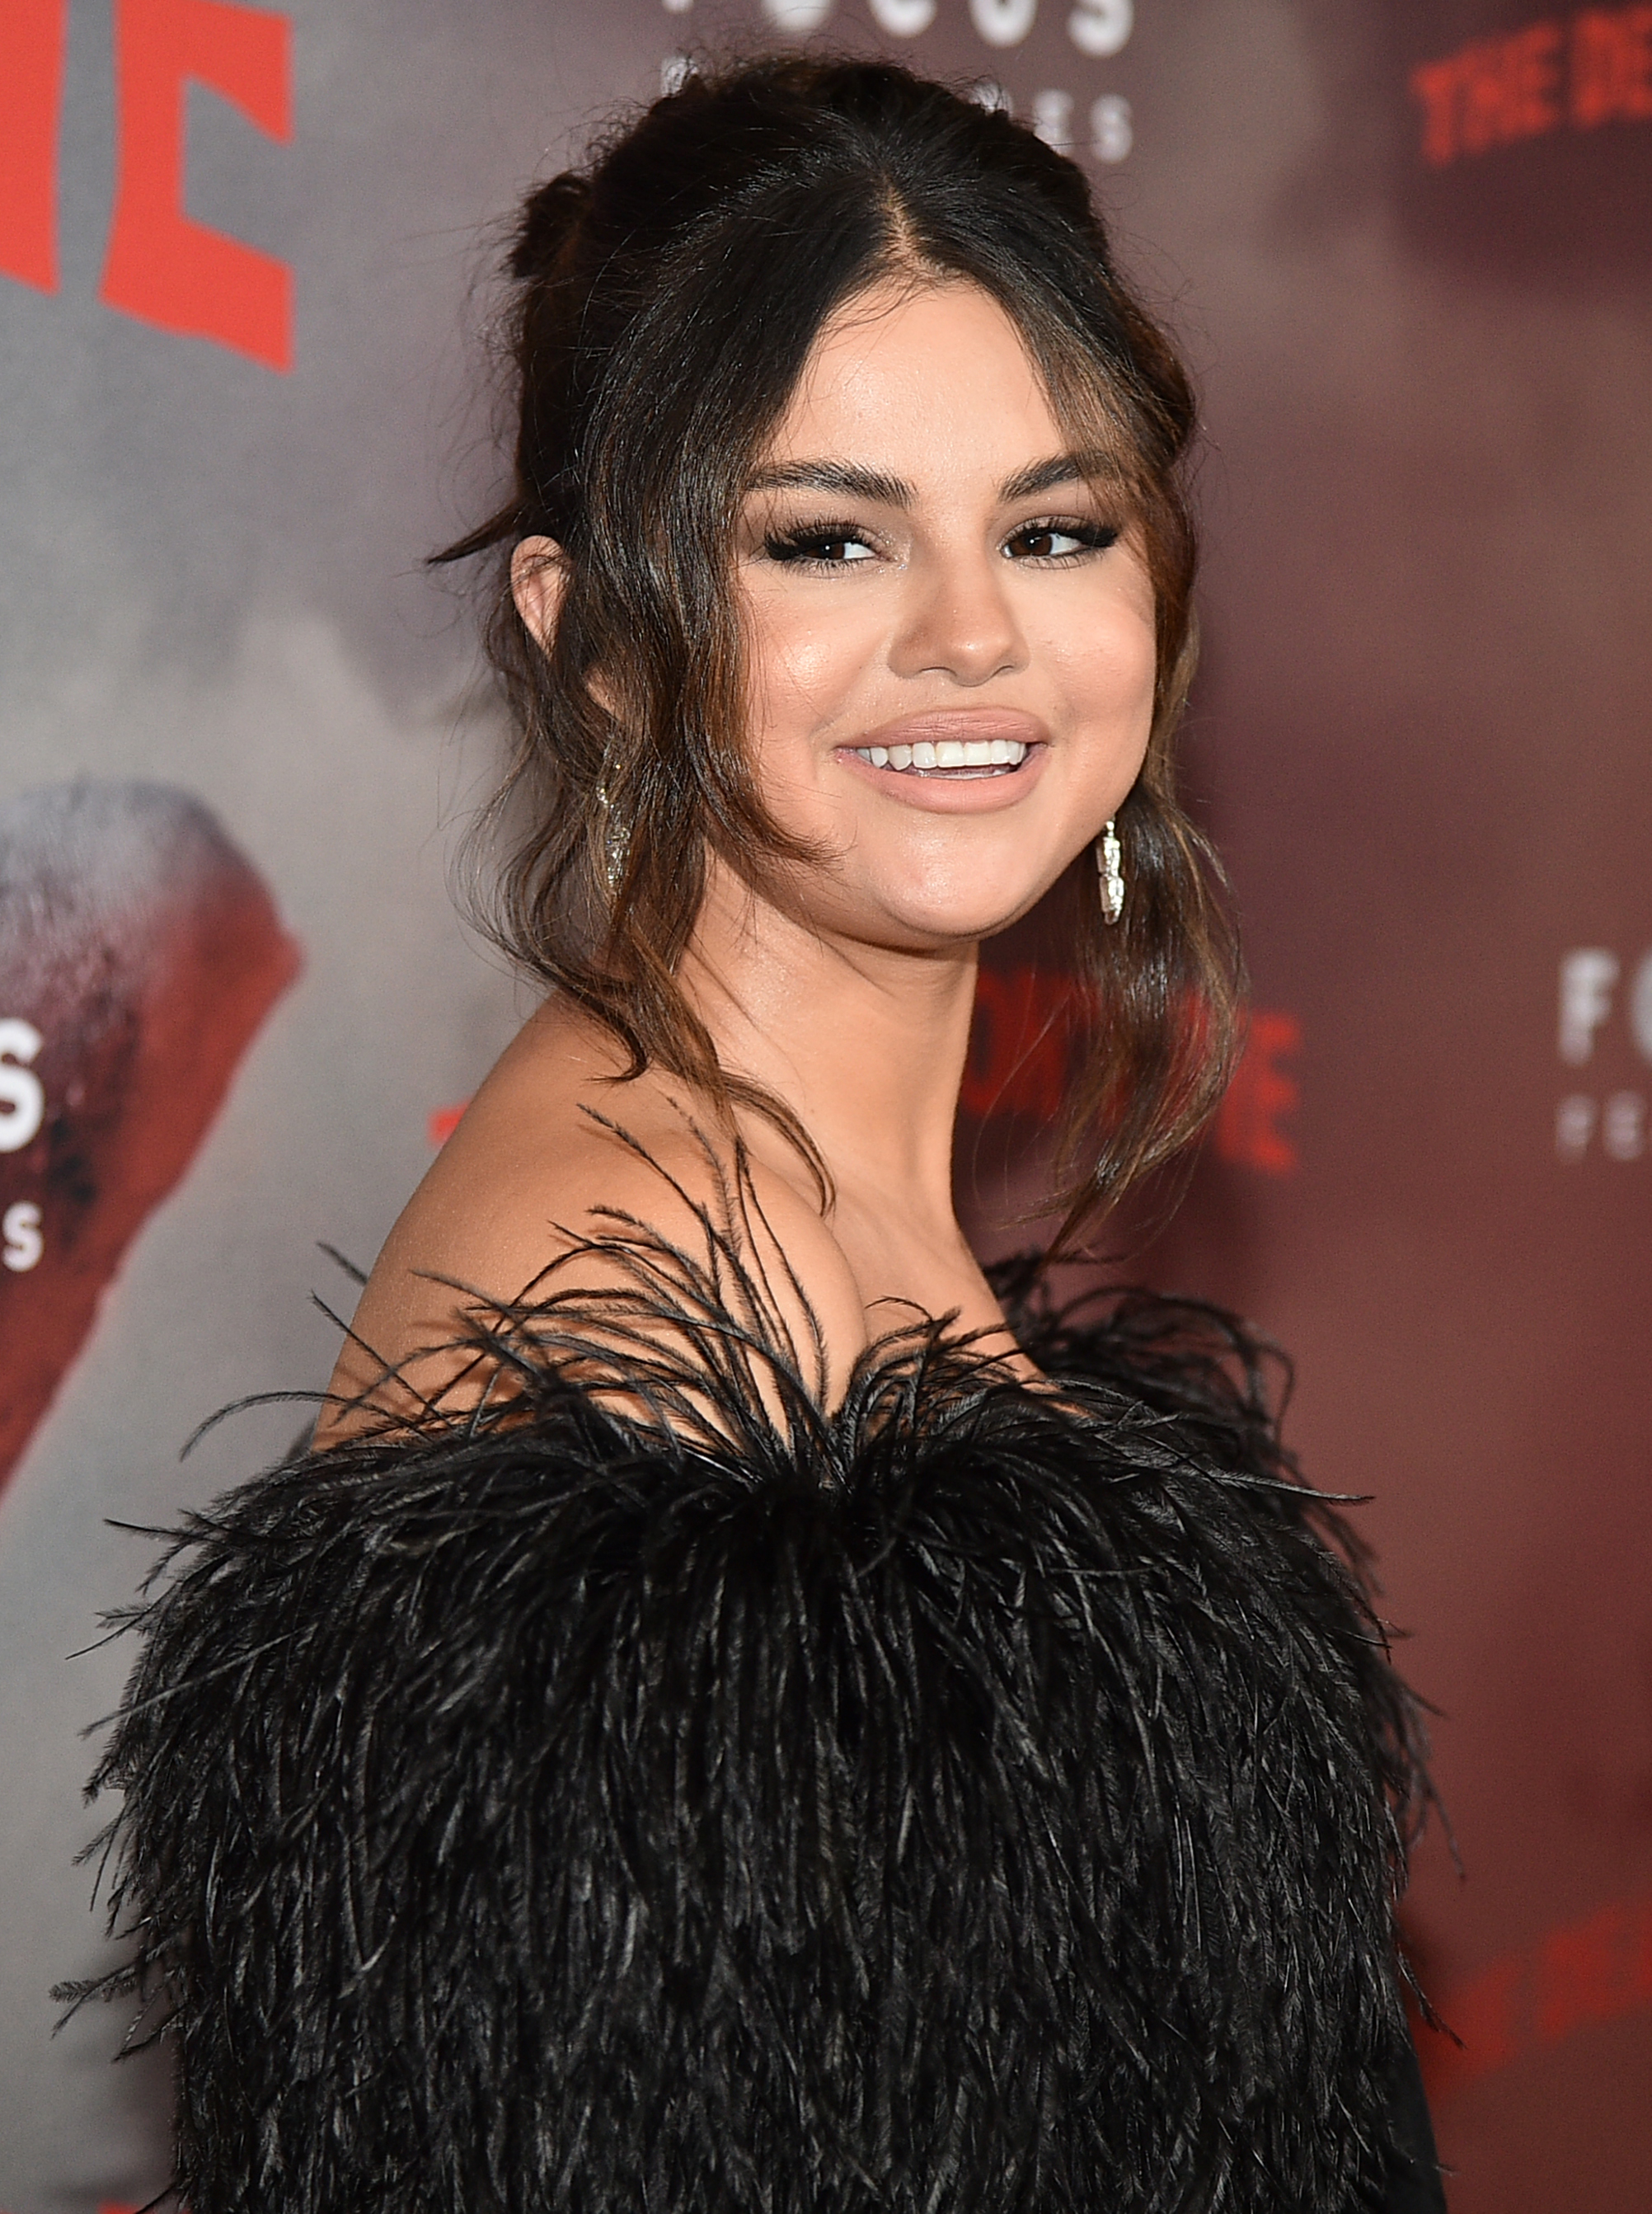 Selena Gomez's Maid of Honor Gown at Her Cousin's Wedding Was a Total Showstopper